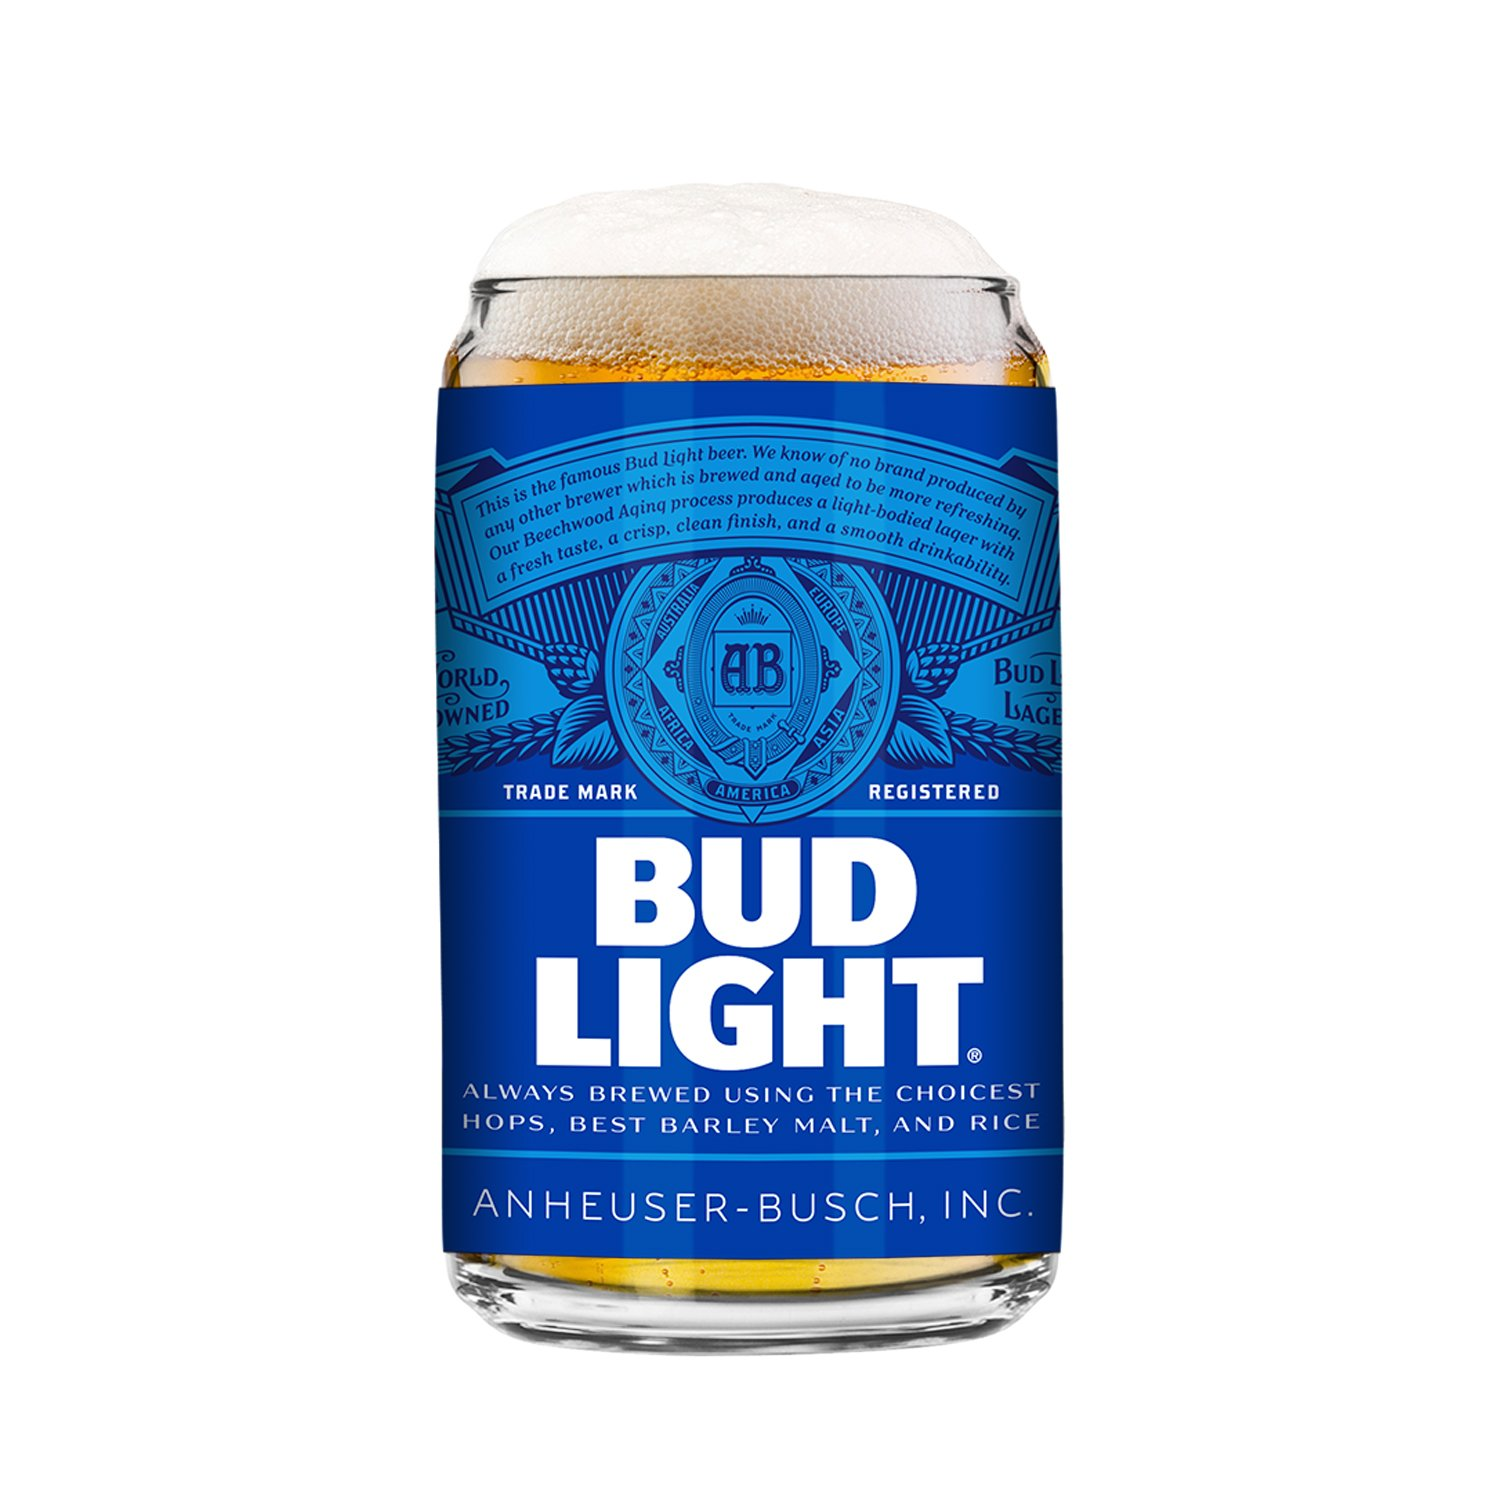 Bud Light 2-Pack Can Beer Glass, 16oz 513647